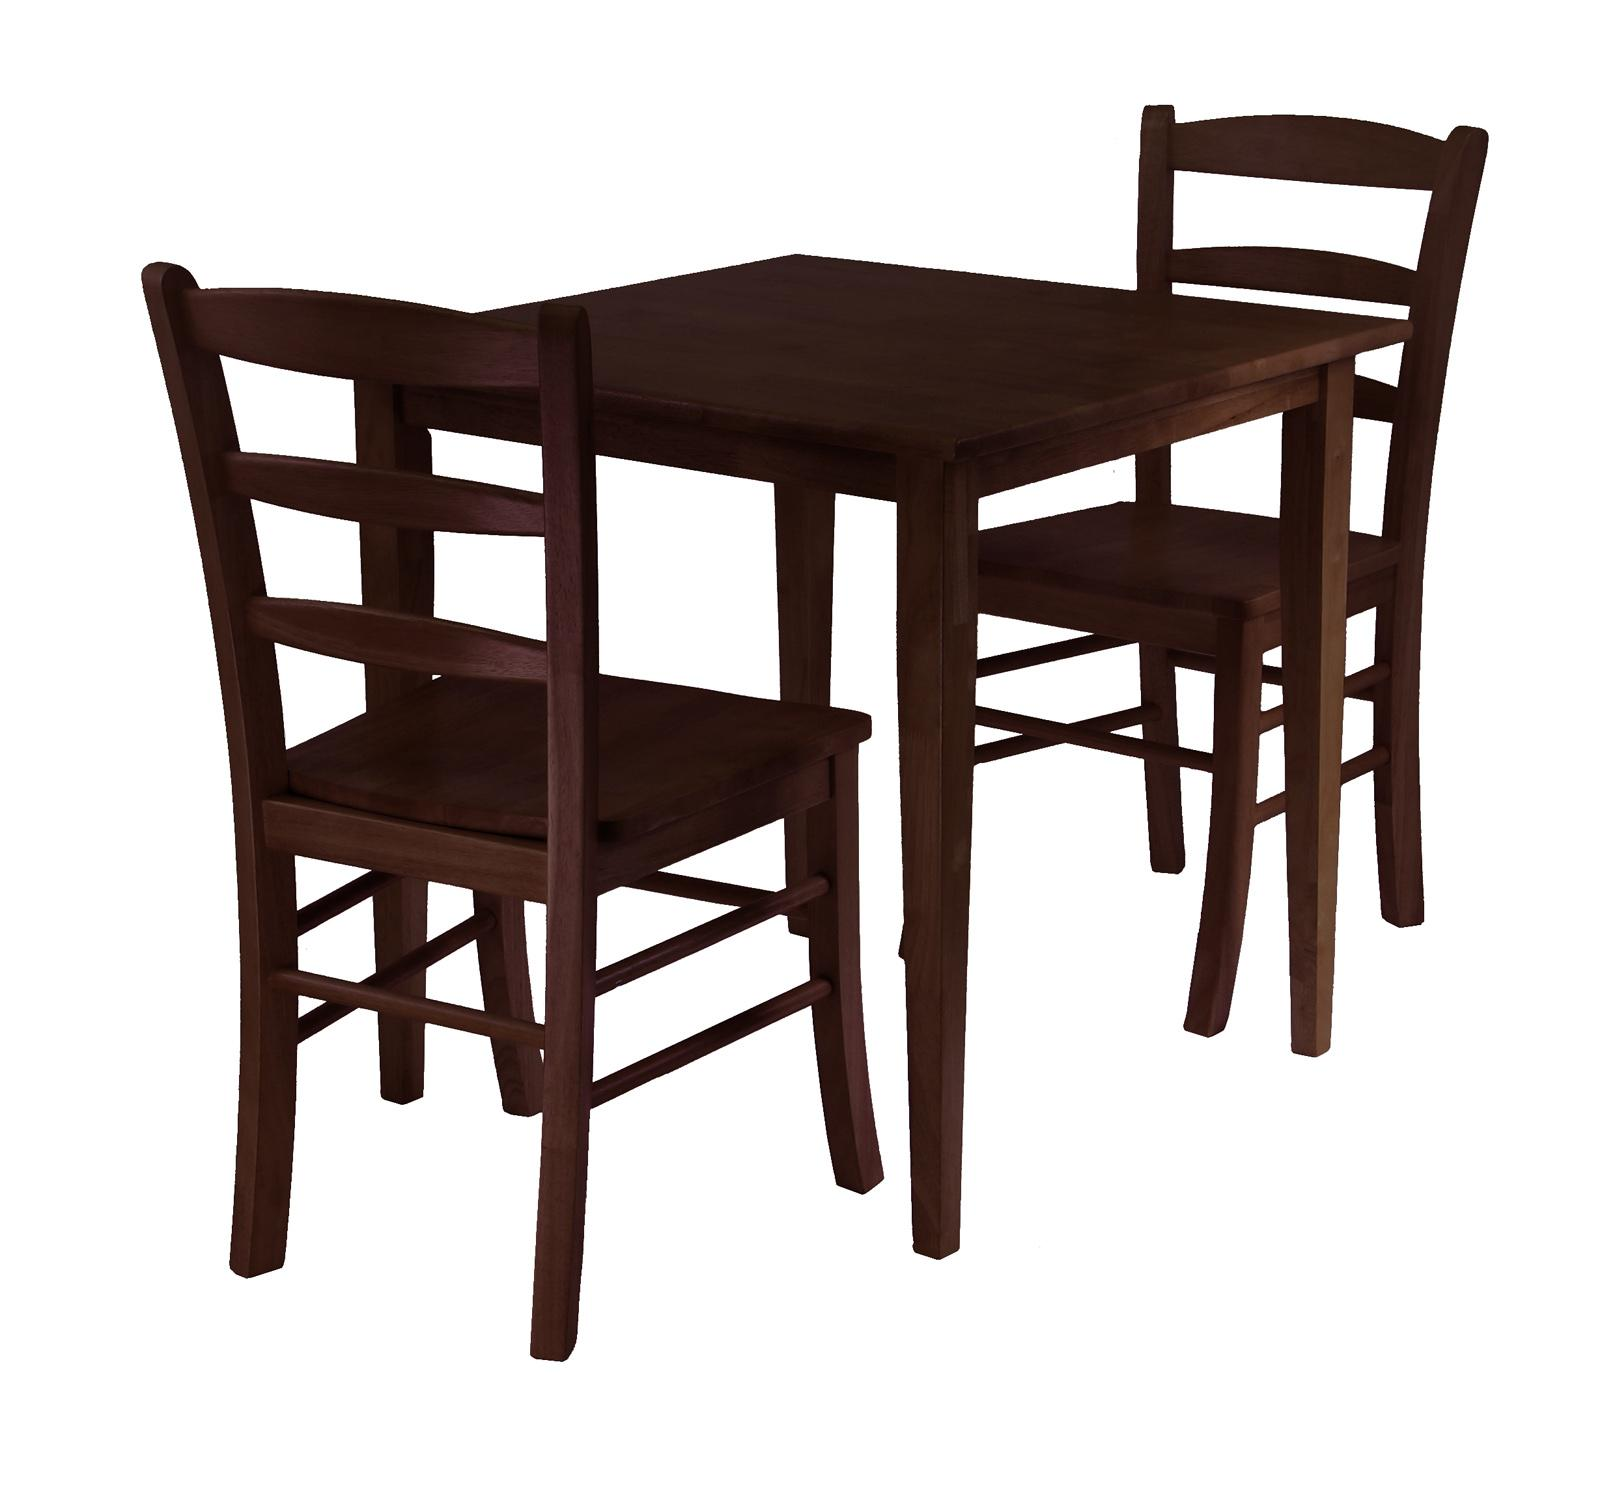 Groveland 3pc square dining table with 2 chairs ojcommerce for Breakfast table and chairs